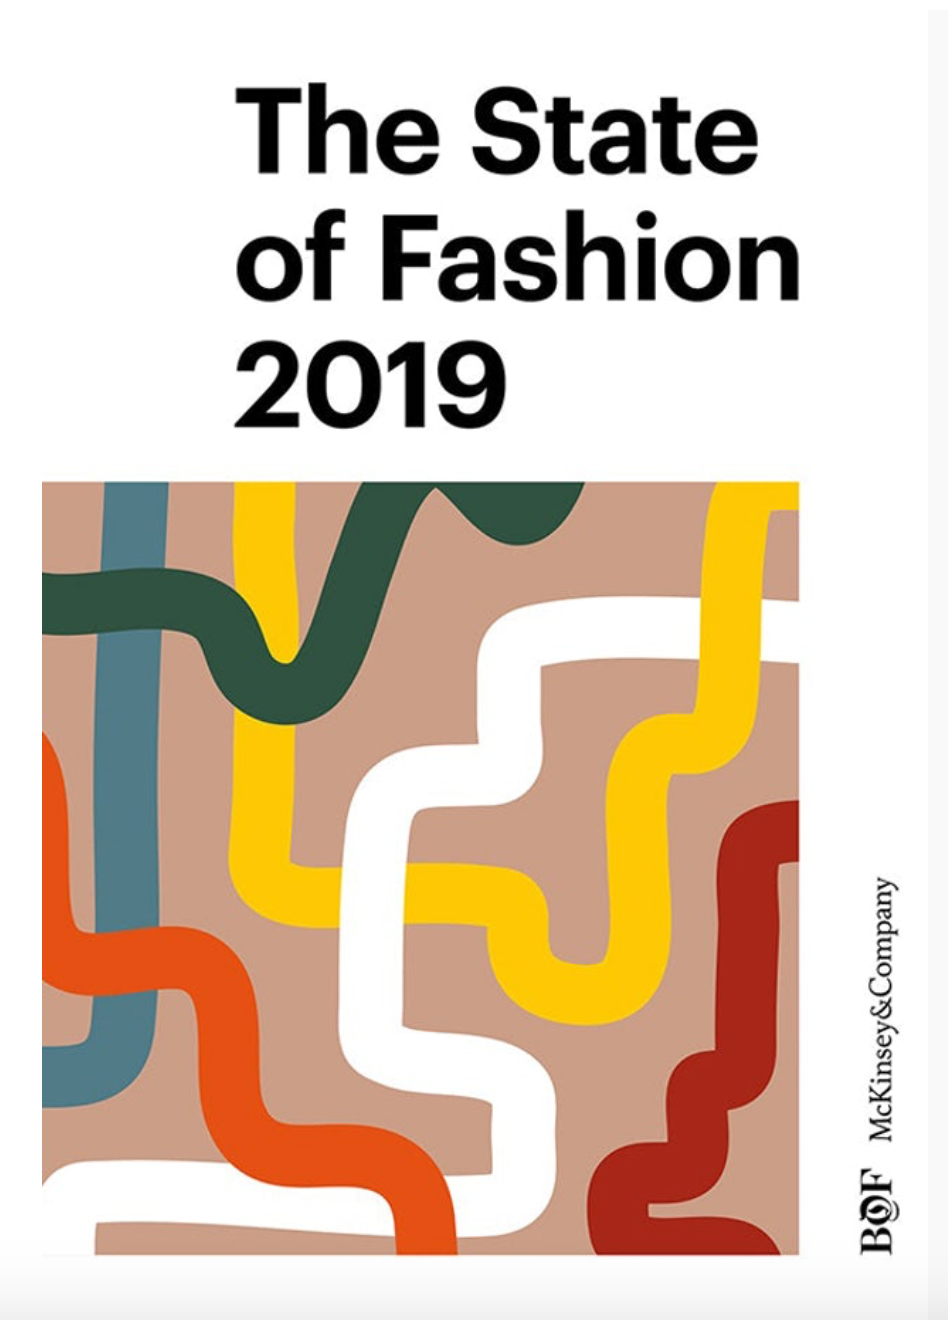 The State of Fashion 2019